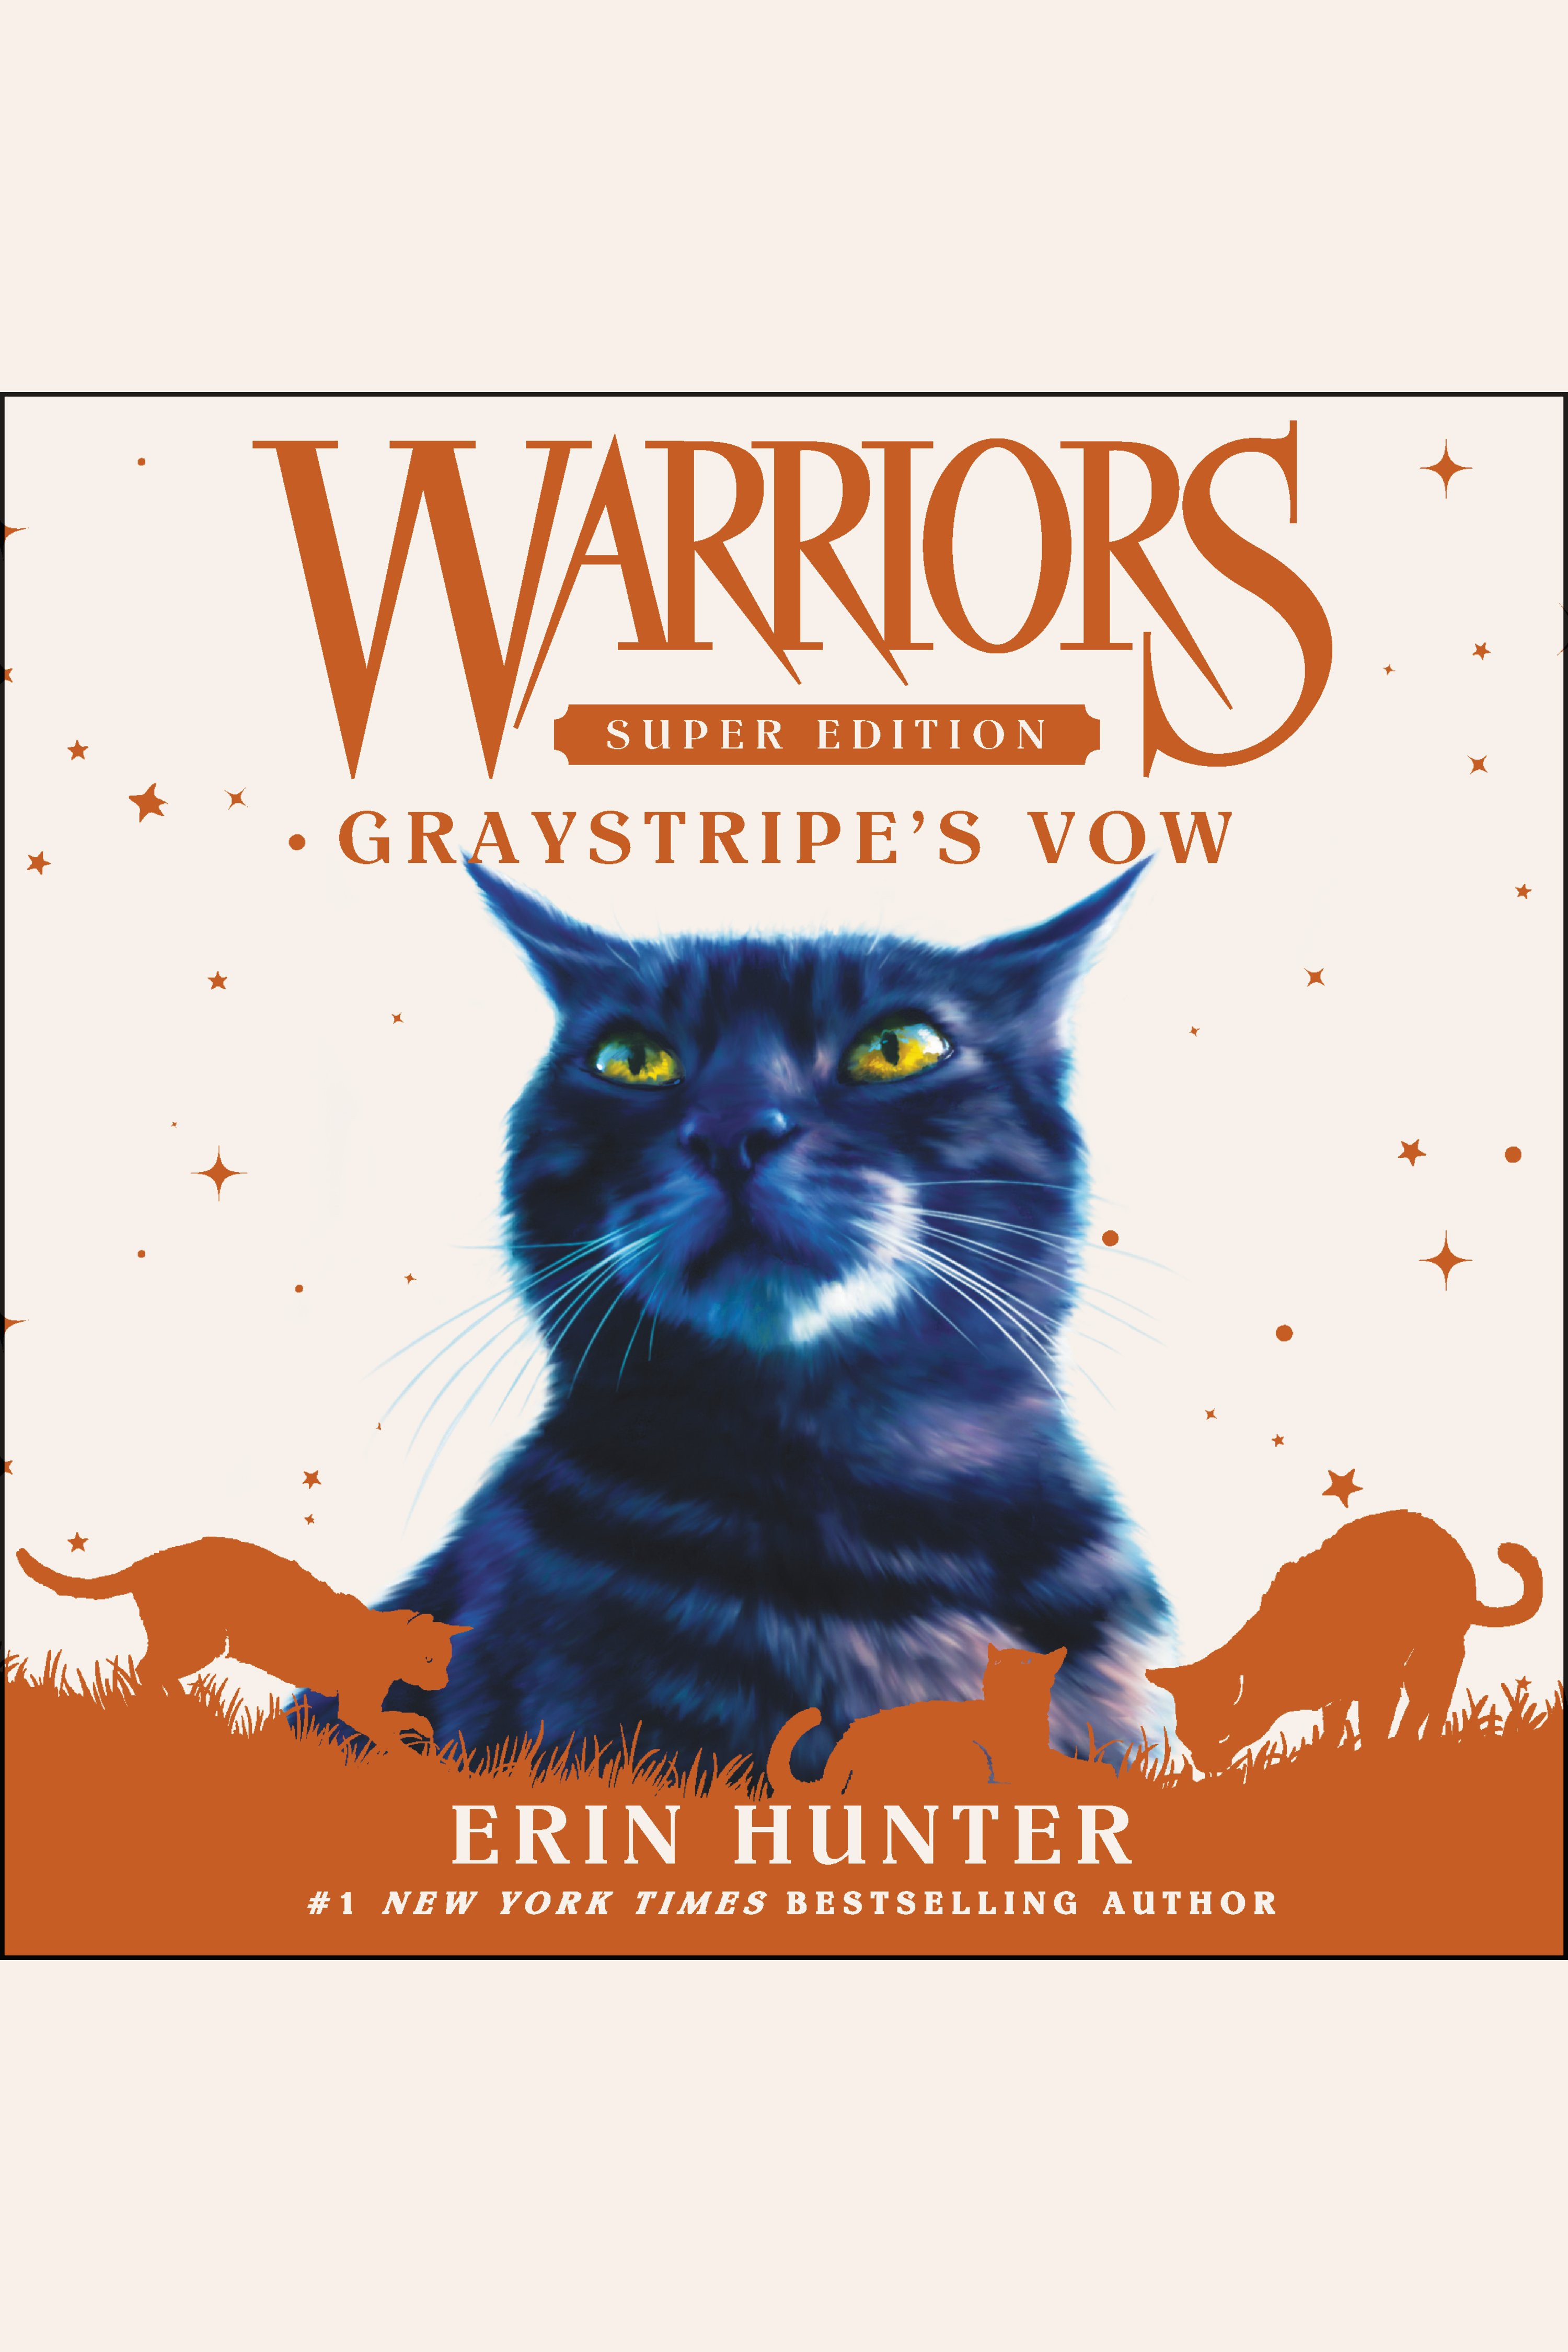 Cover Image of Warriors Super Edition: Graystripe's Vow